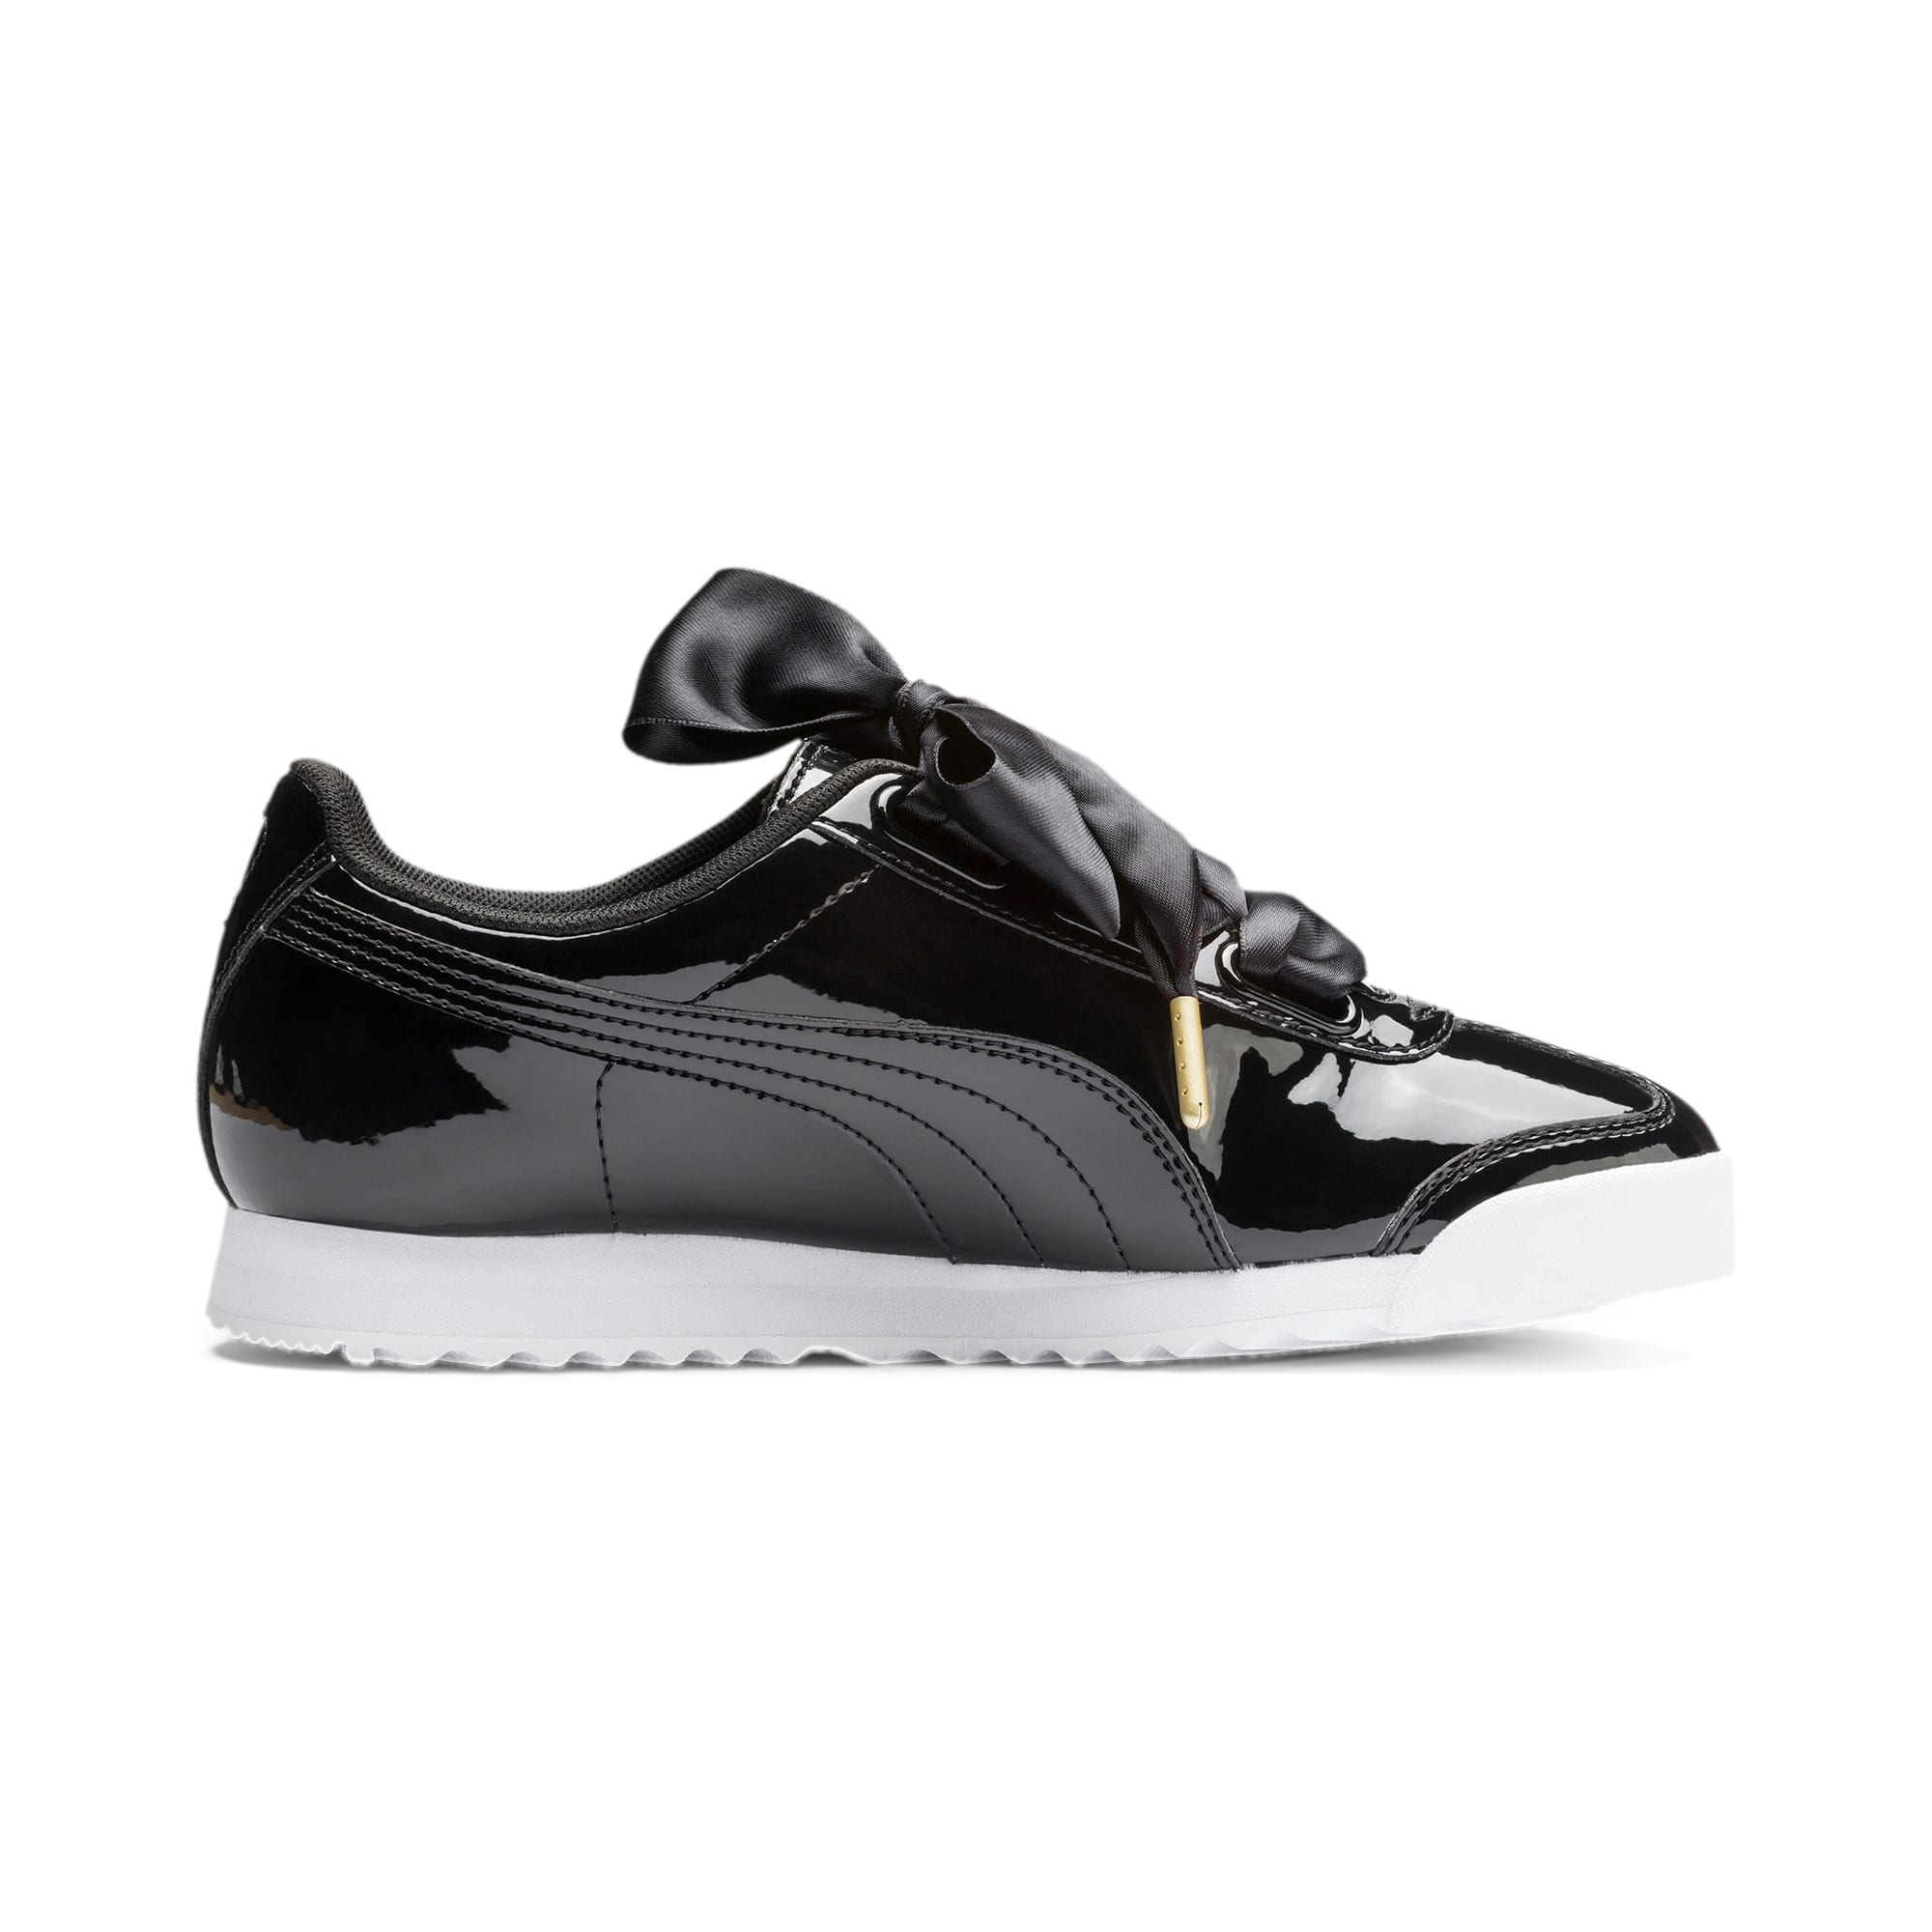 Thumbnail 6 of Roma Heart Patent Women's Sneakers, Puma Black-Puma Team Gold, medium